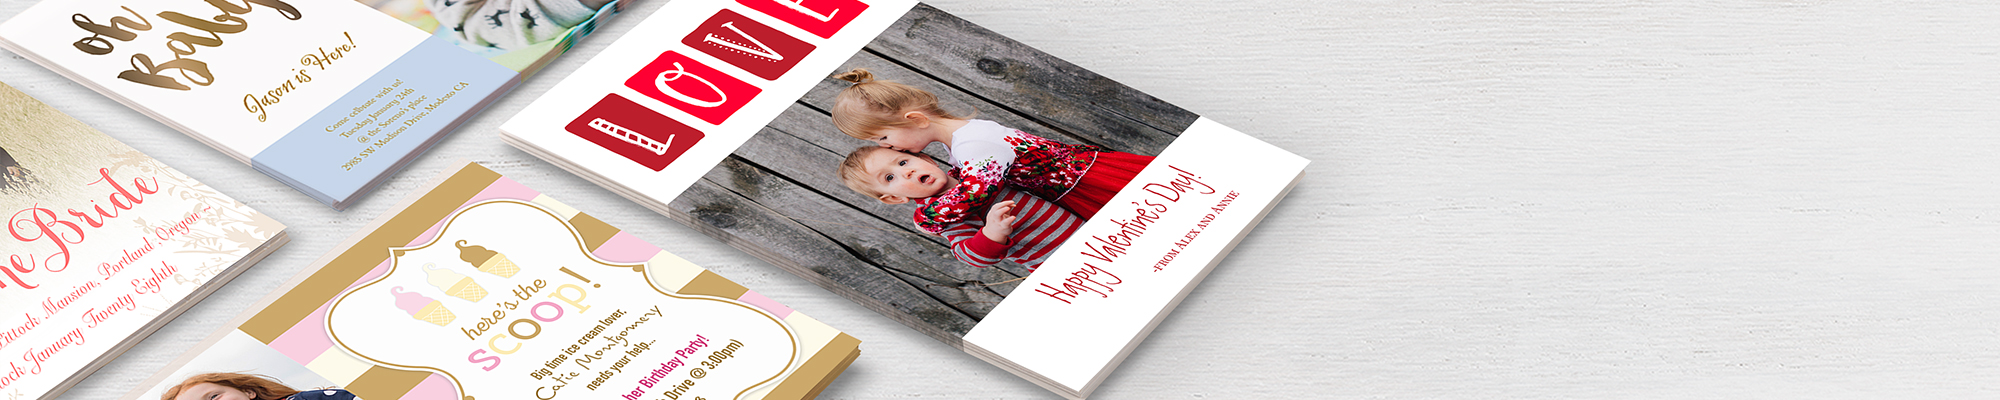 Photo Cards : For all special people and occasions in your life, cards send the perfect message.